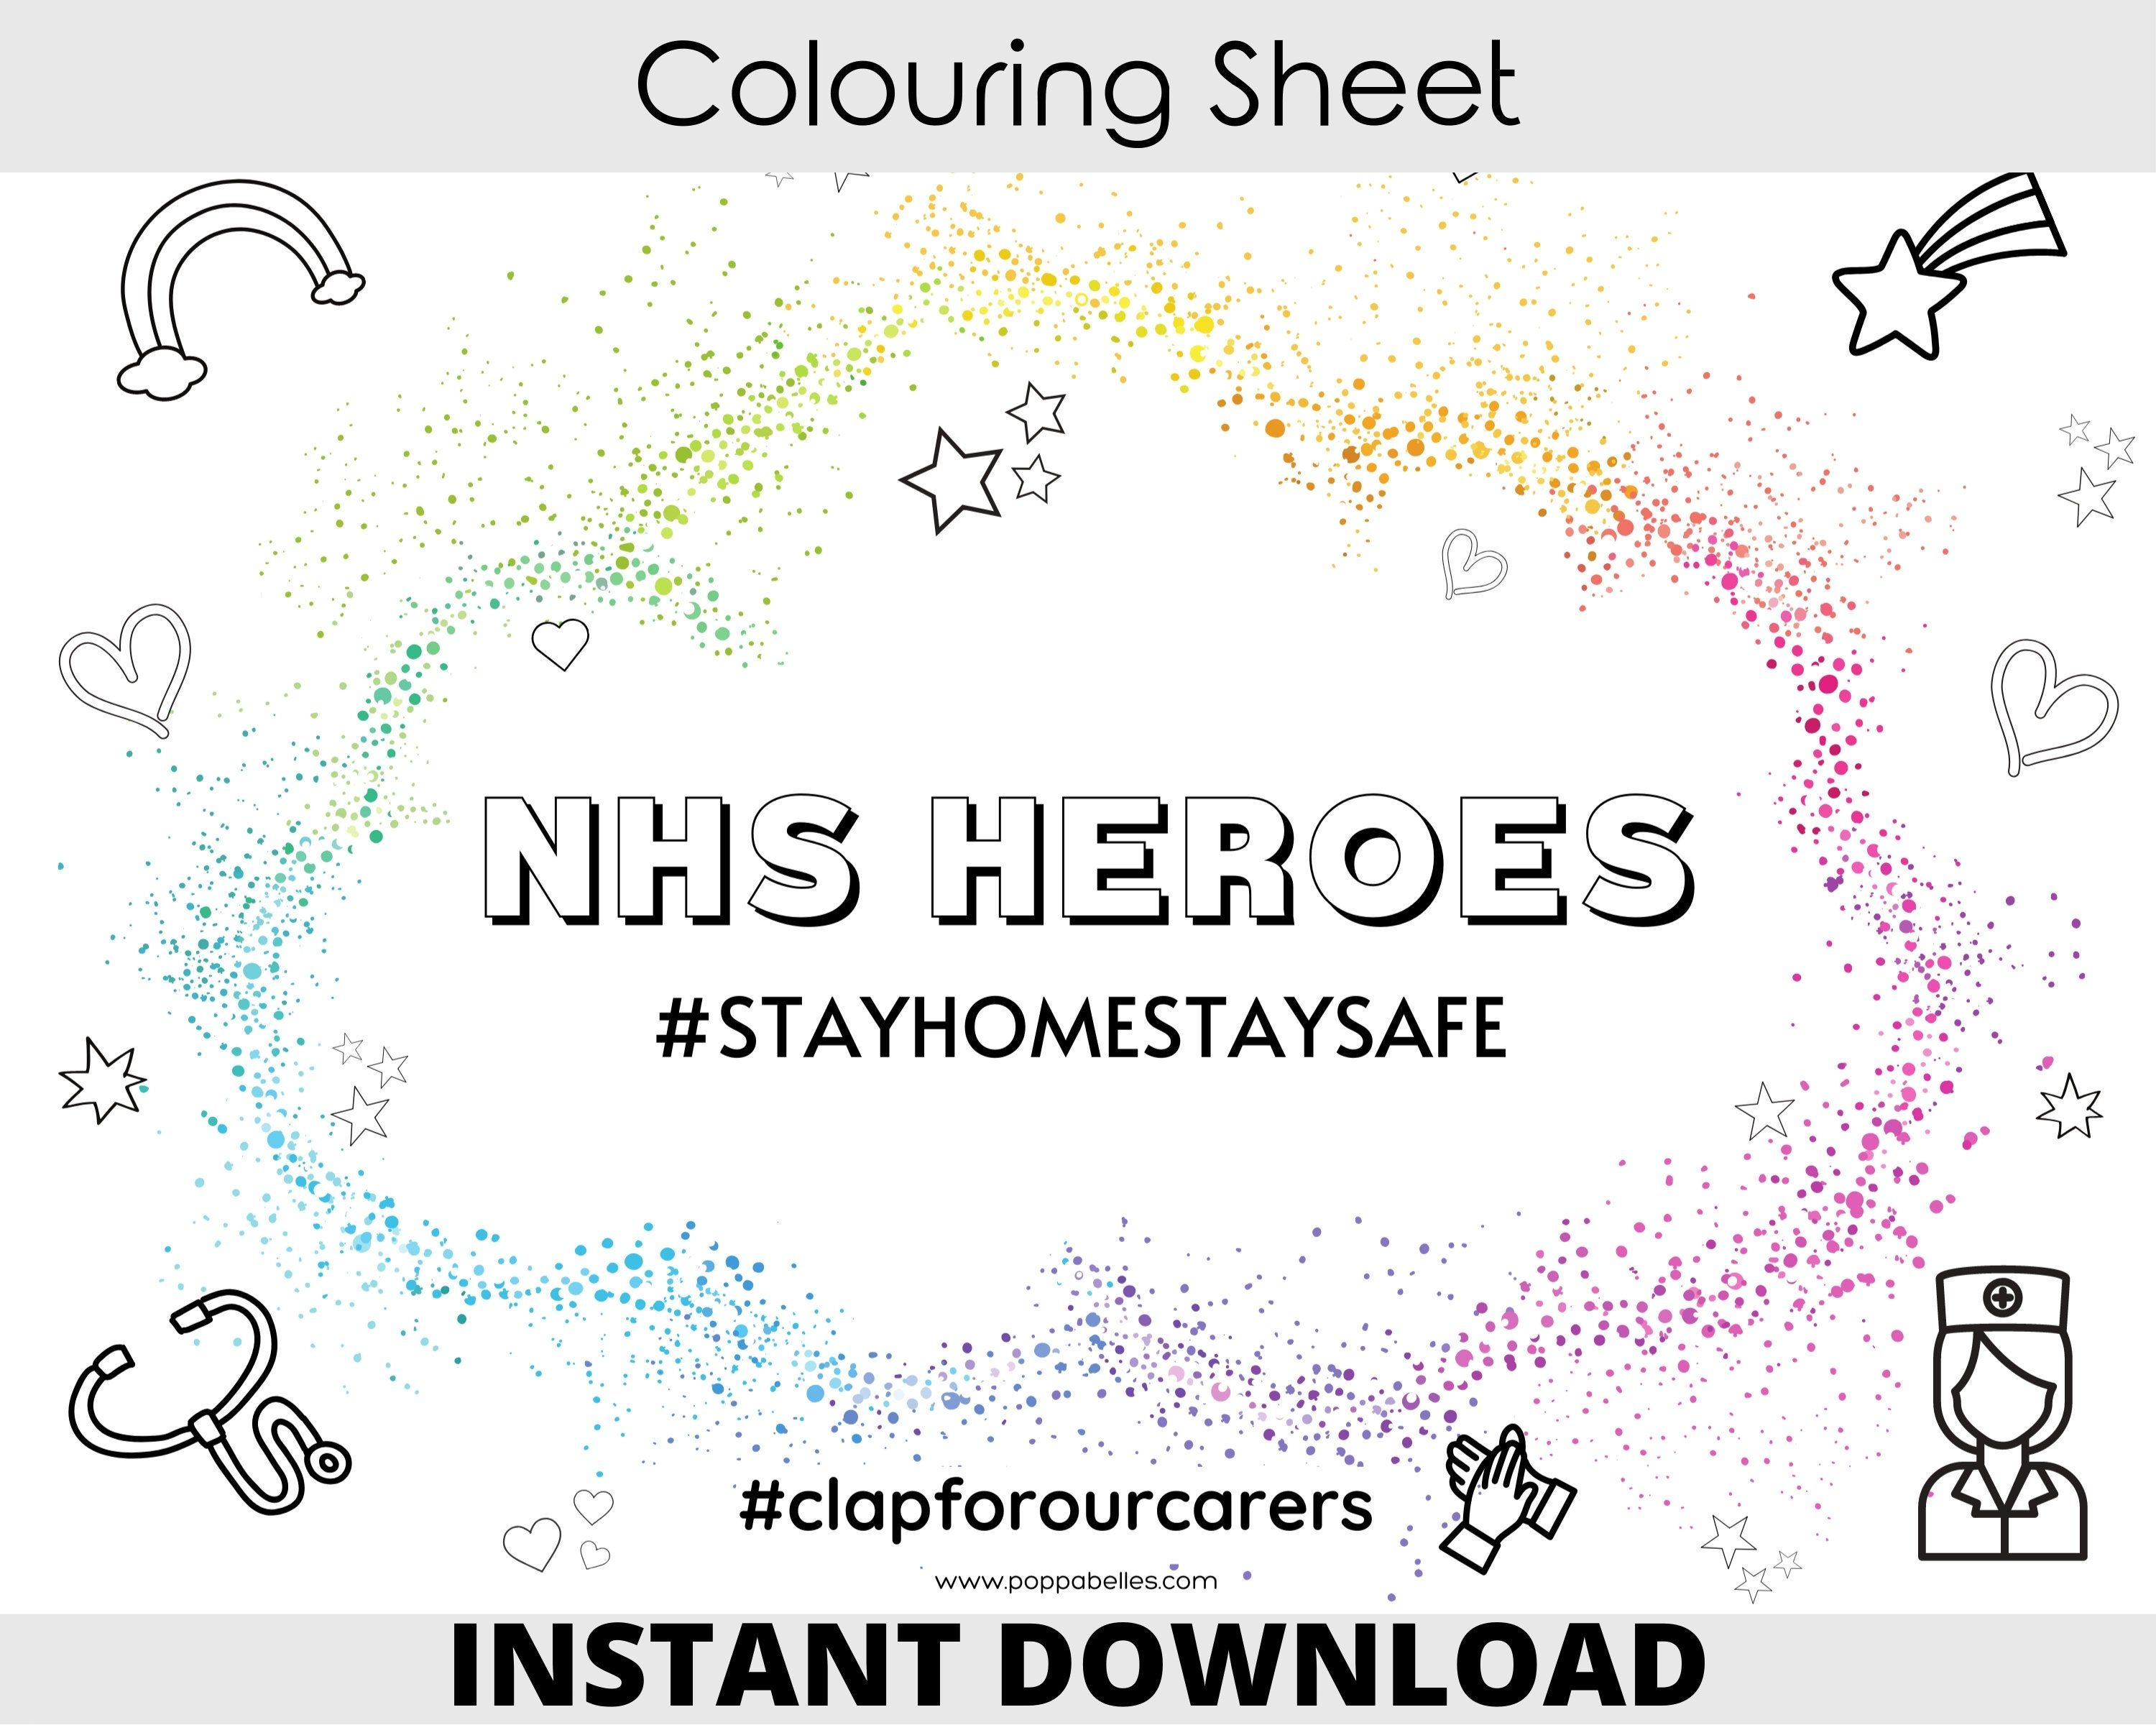 Nhs Heroes A4 Colouring Sheet Colouring Sheet For Kids Or Adults To Create Positivity Inst Coloring Sheets For Kids Coloring Sheets Free Printable Worksheets